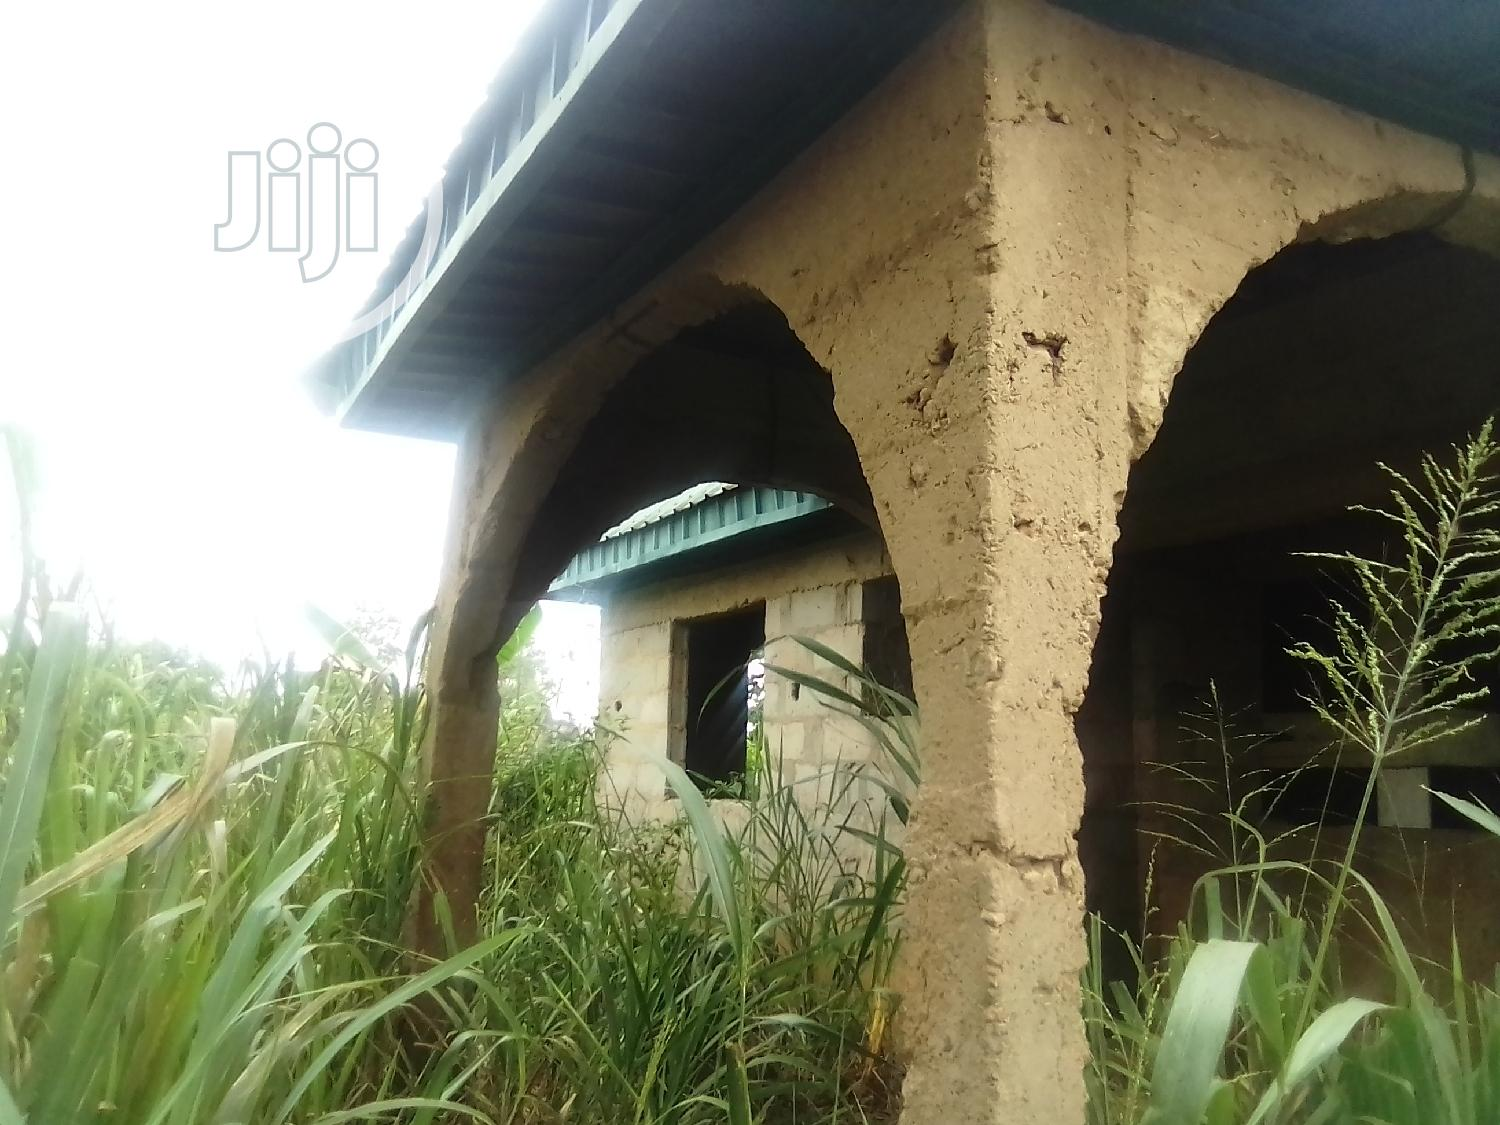 4 Bedroom For Sale | Houses & Apartments For Sale for sale in Badagry, Lagos State, Nigeria